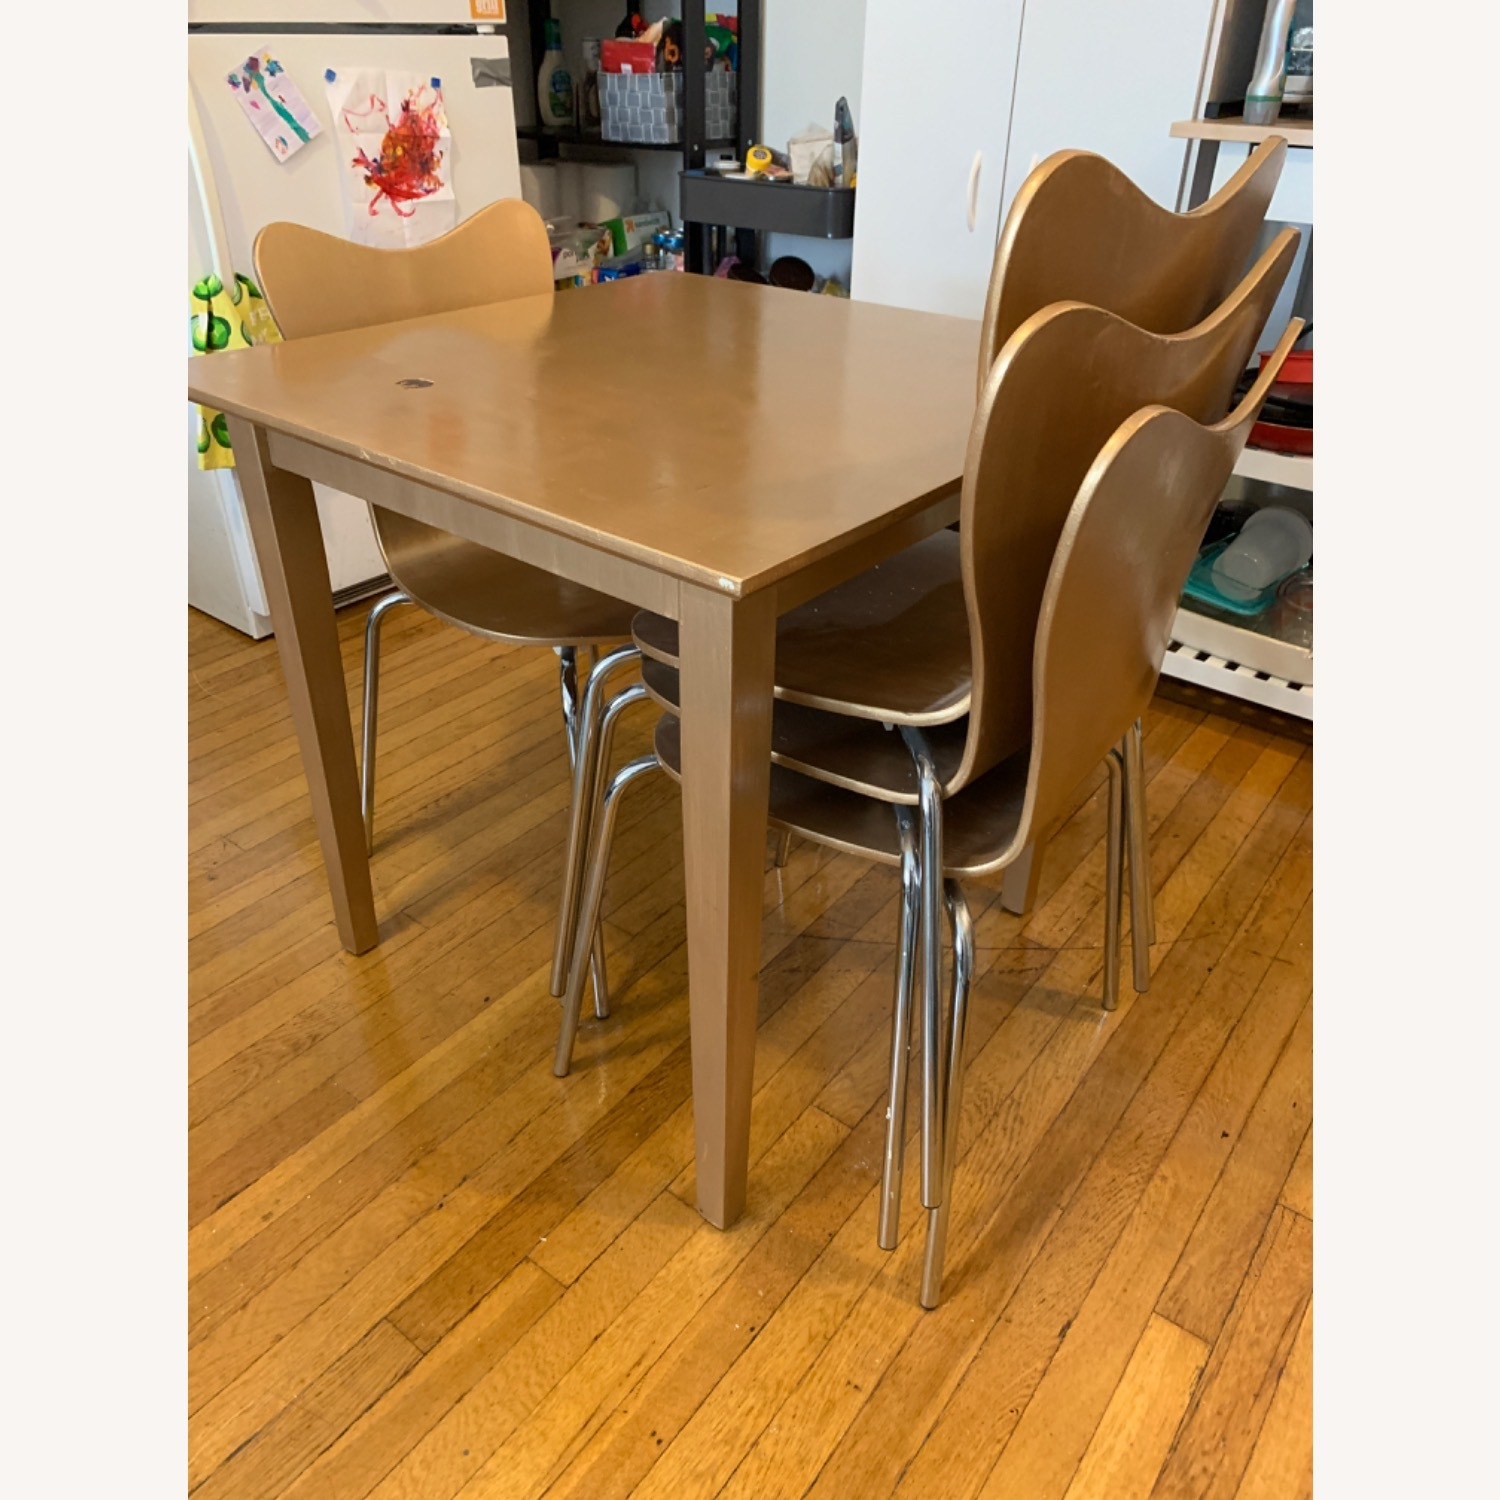 Gold West Elm (4) Chairs and Table - image-2